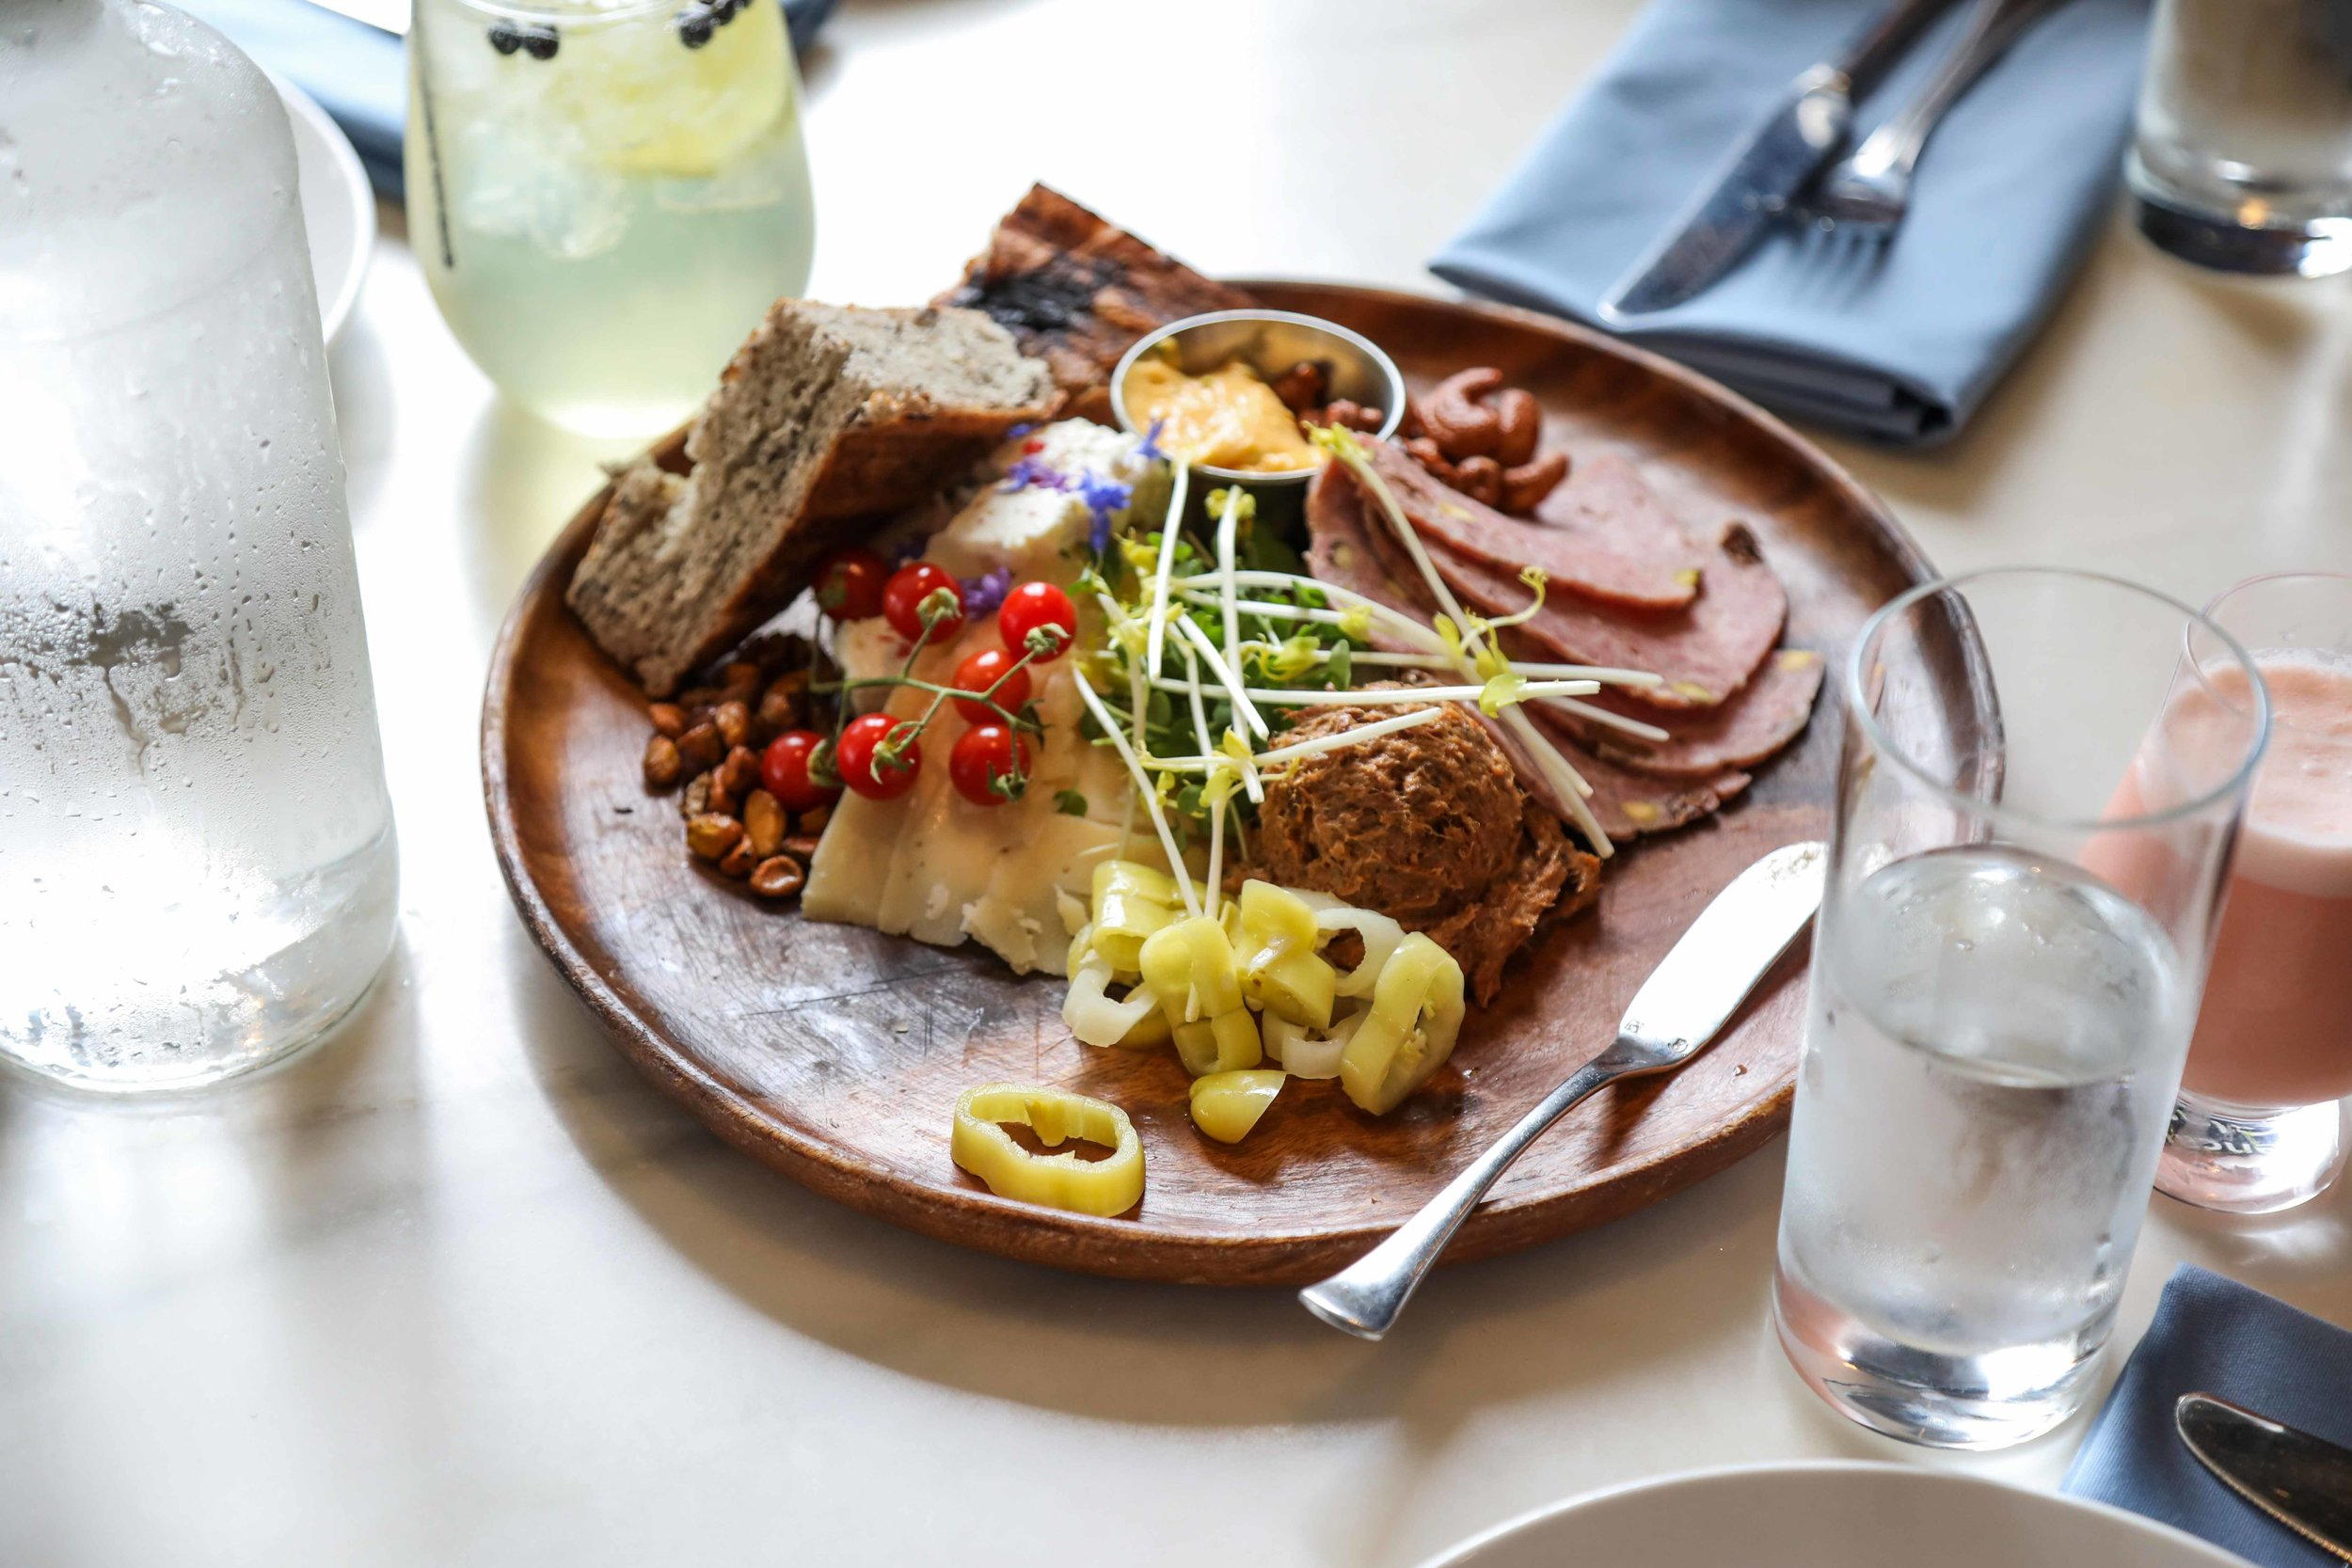 The Ploughman's Plate from Republic Tavern